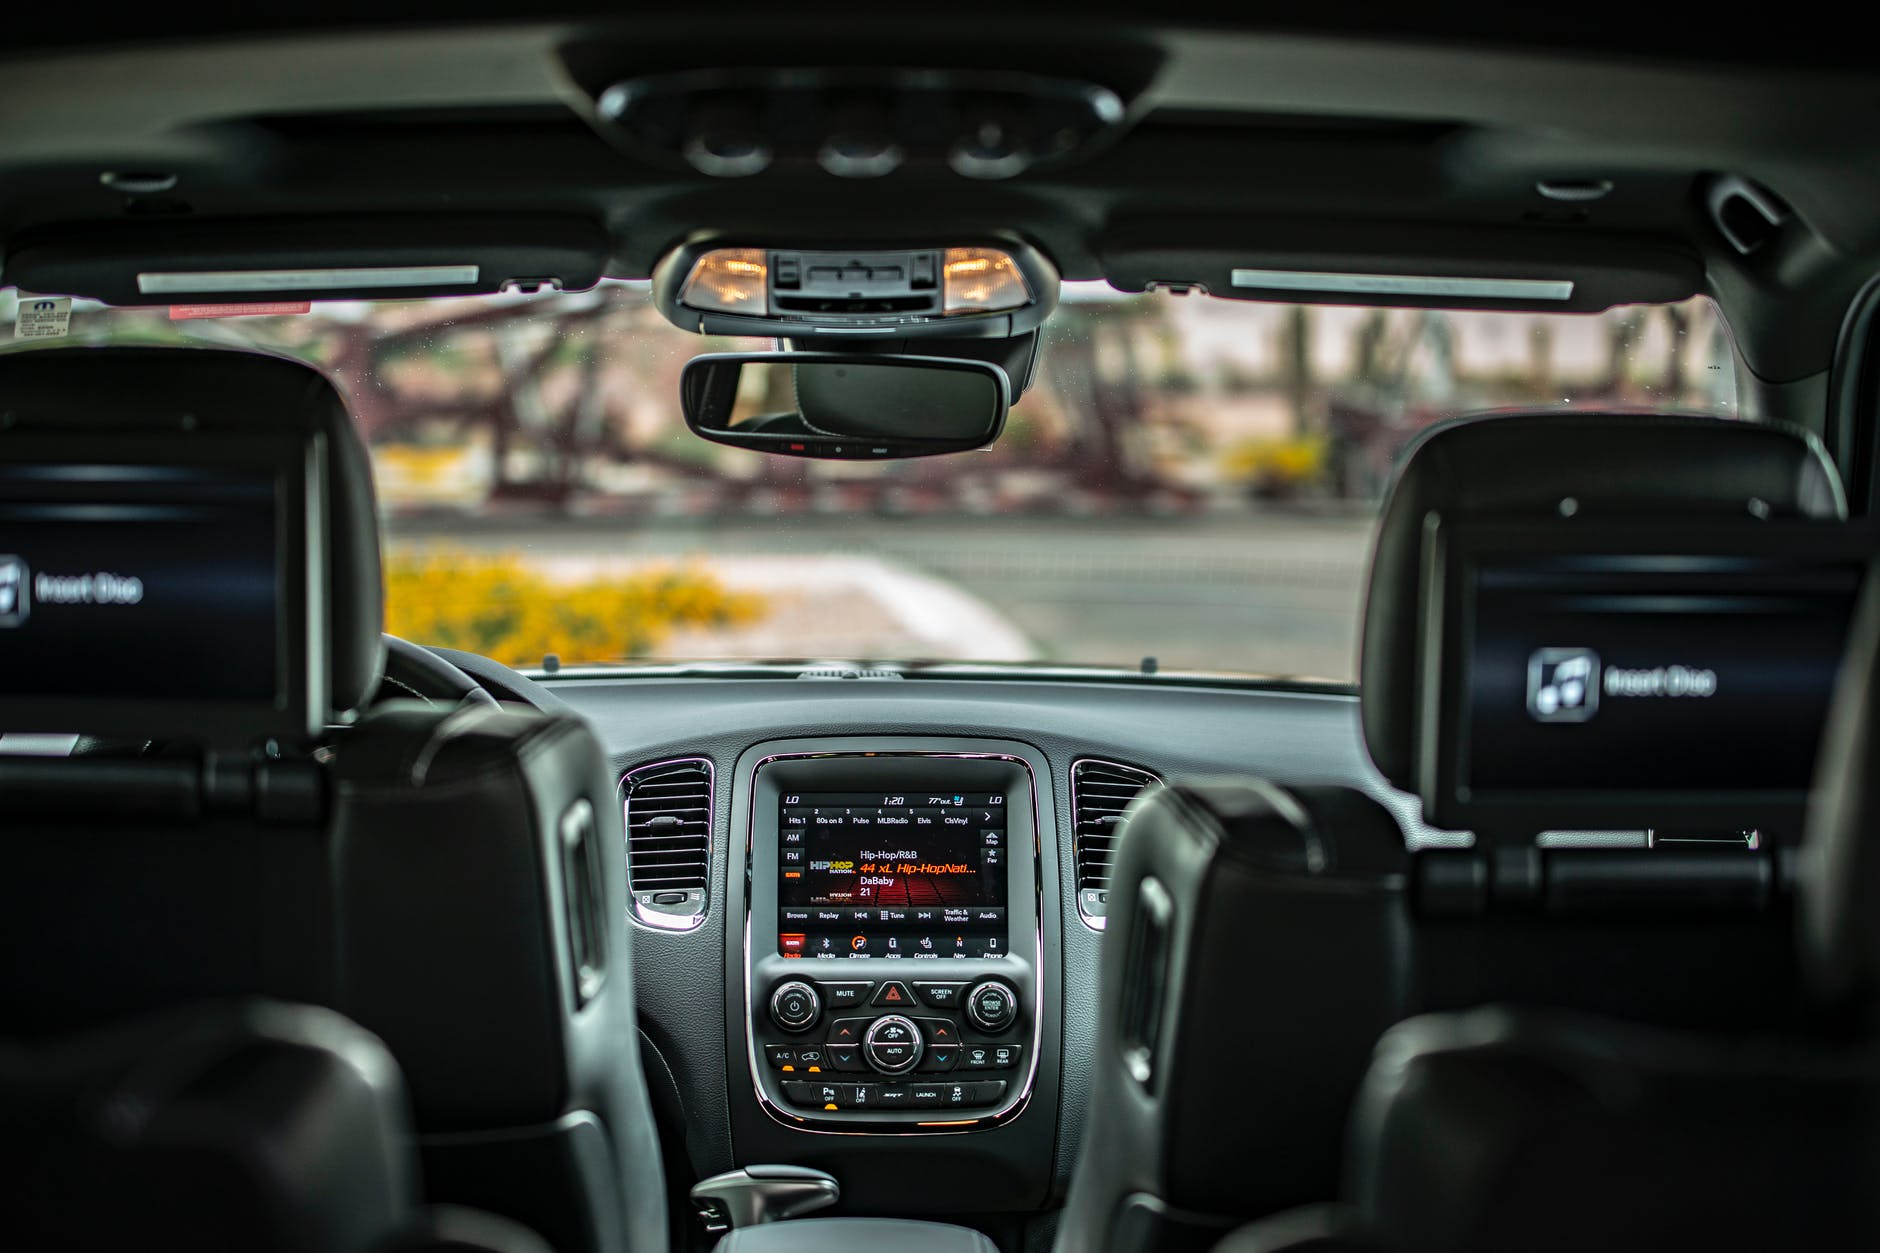 Photo of a interior of a car